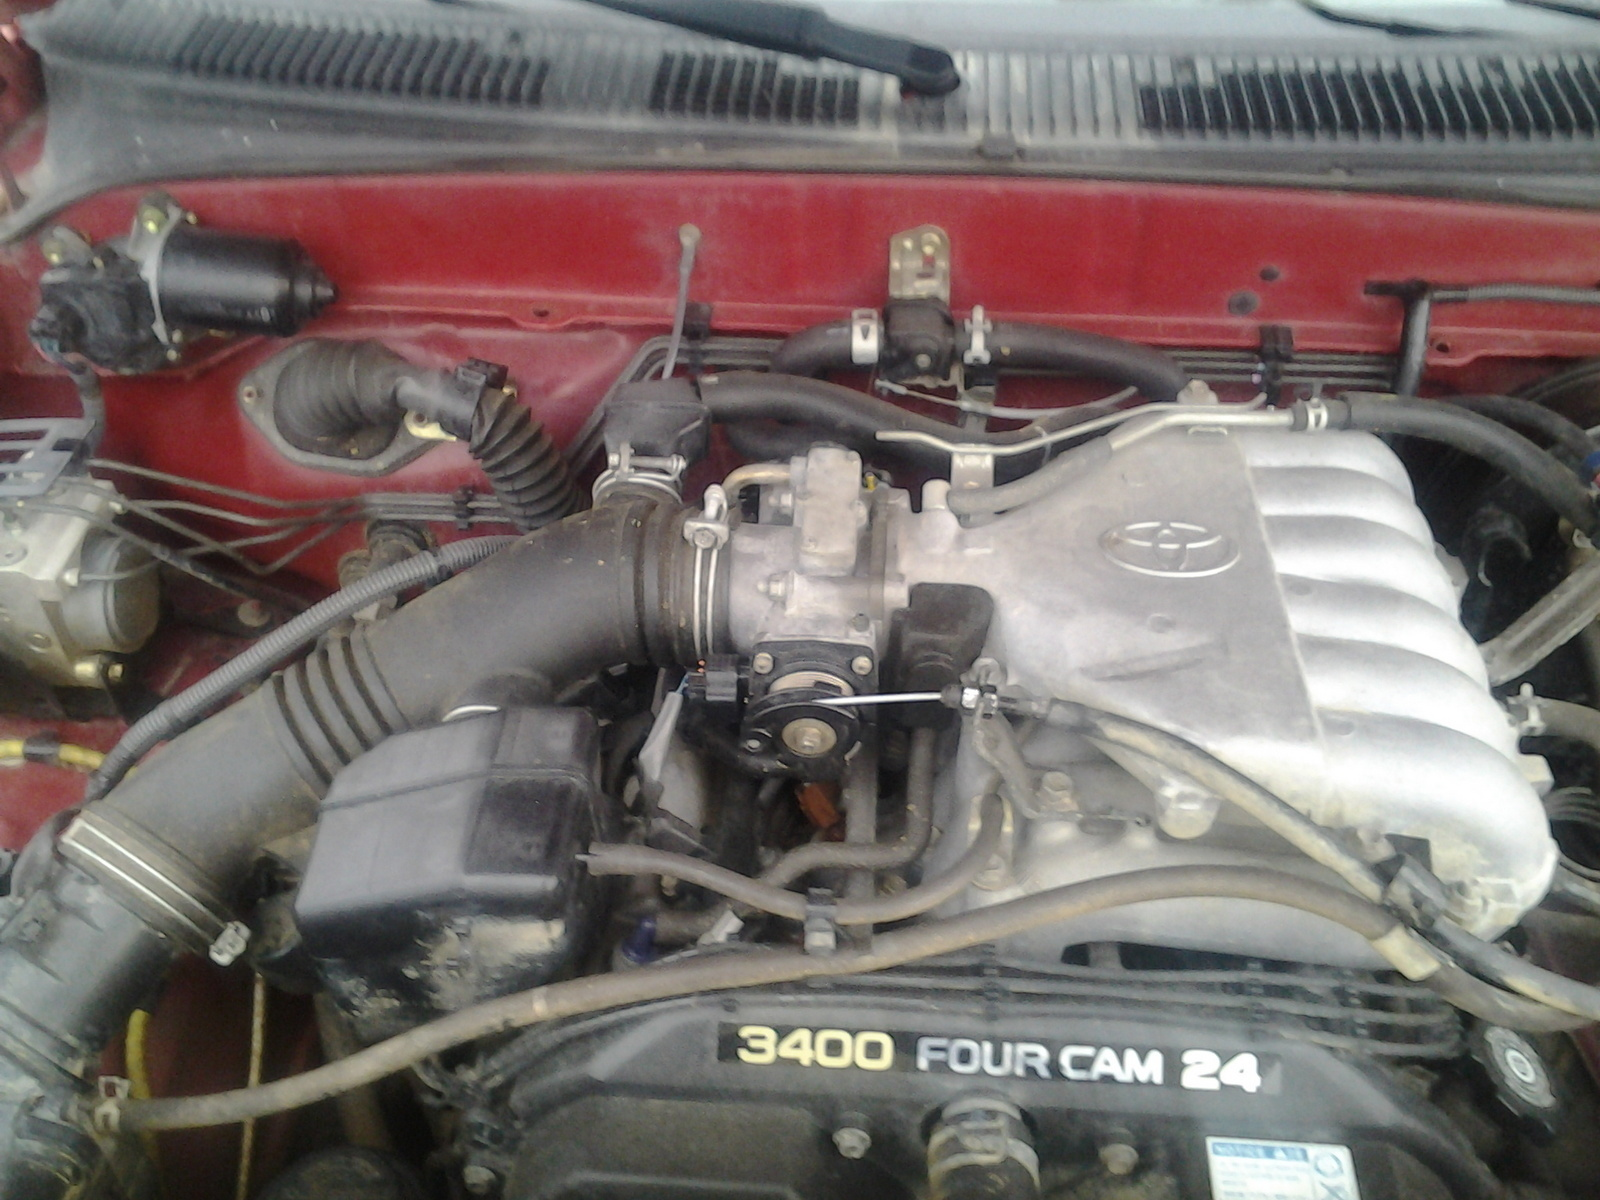 why is my 2003 tacoma idle high and slack in throttle line, after I  replaced the throttle body?